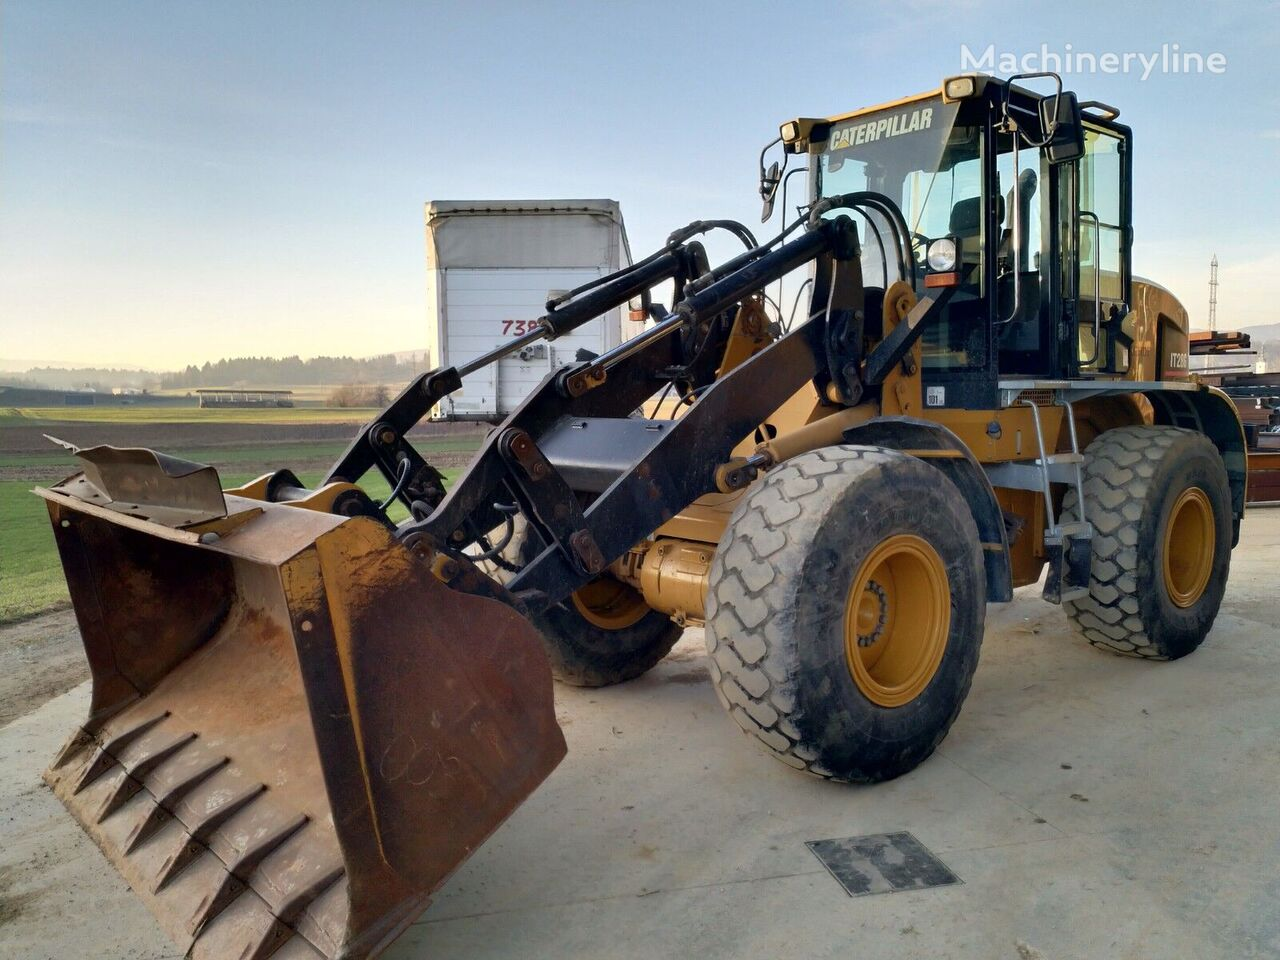 CATERPILLAR IT28G wheel loader